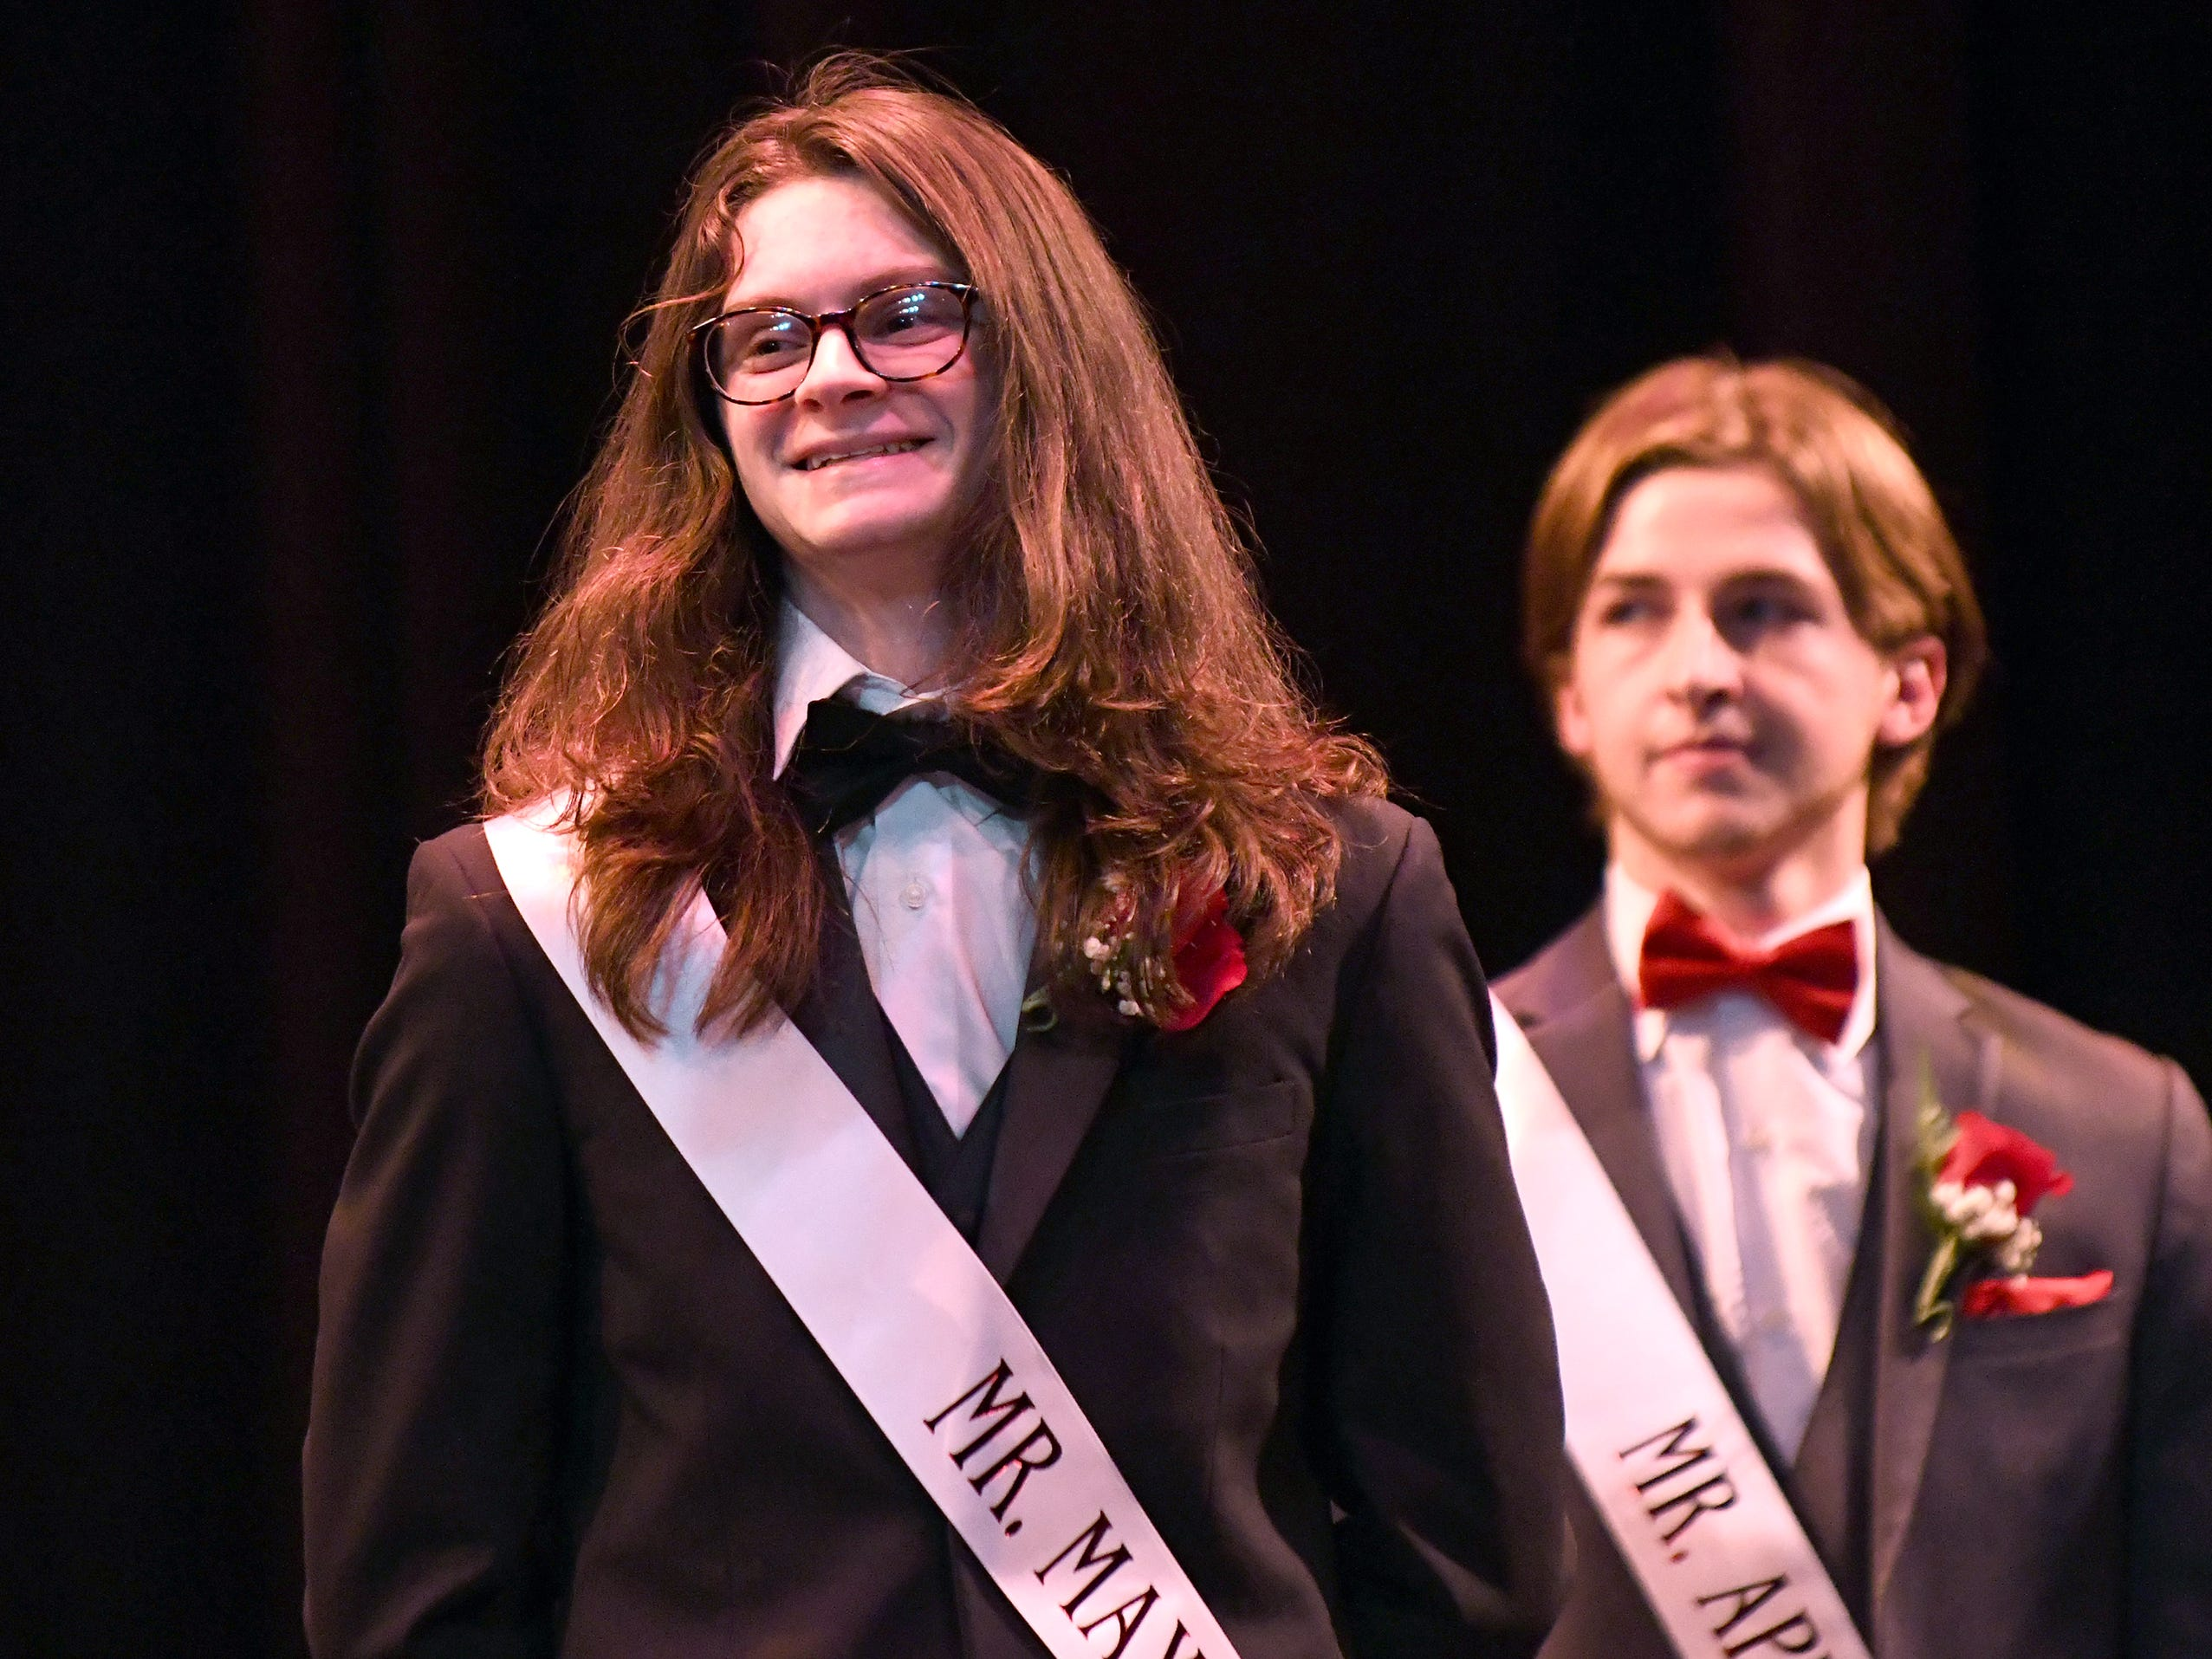 Twelve contestants vied for the 2019 Mr. Vineland crown at Vineland High School on Thursday, January 10.